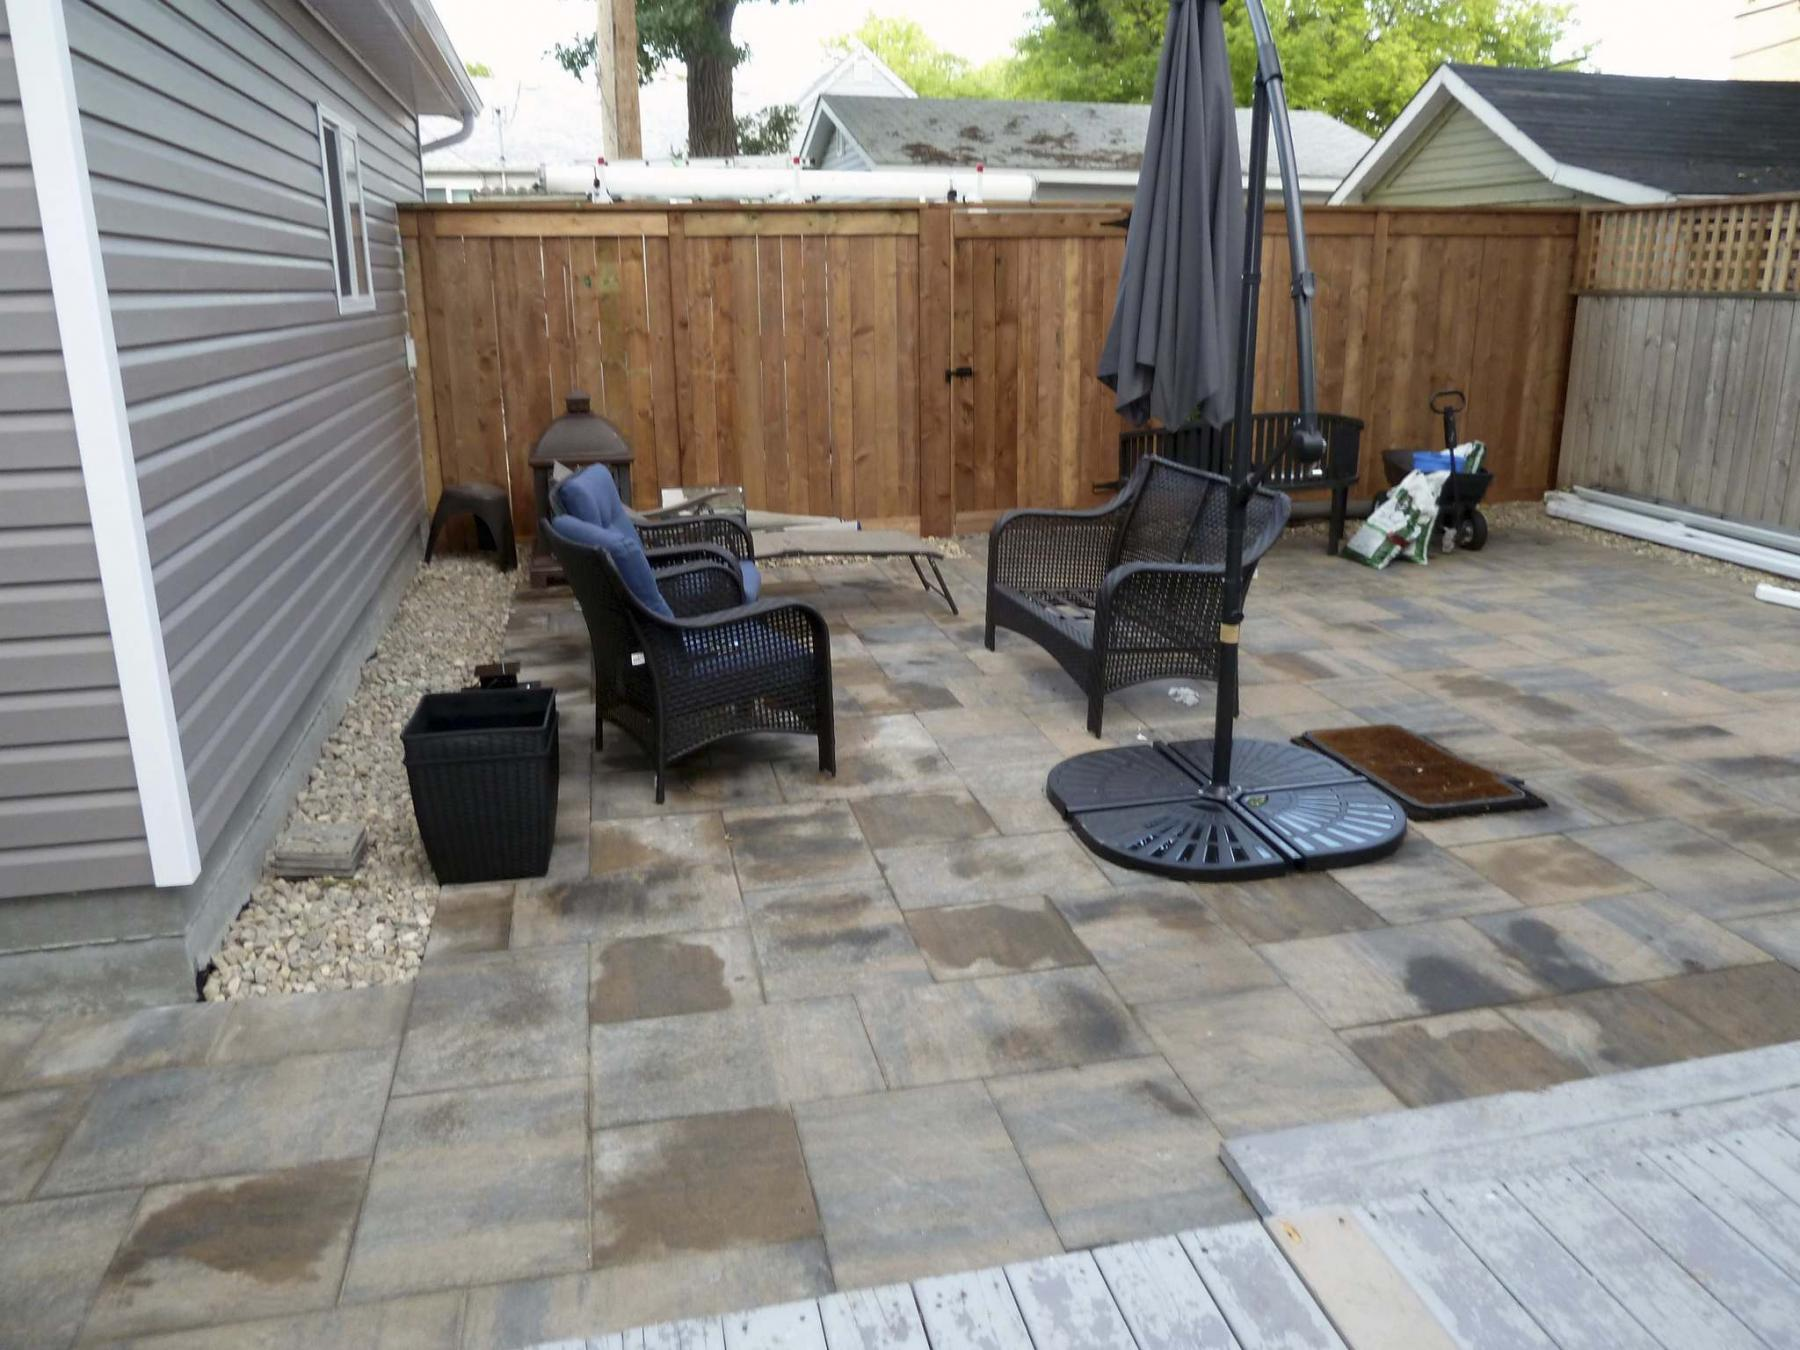 <p>Laurie Mustard / Winnipeg Free Press</p><p>Laurie's friend Beverly Johnson is thrilled with how her home reno is moving along, especially the new backyard, but she warns anyone hiring contractors that communication is king. </p>